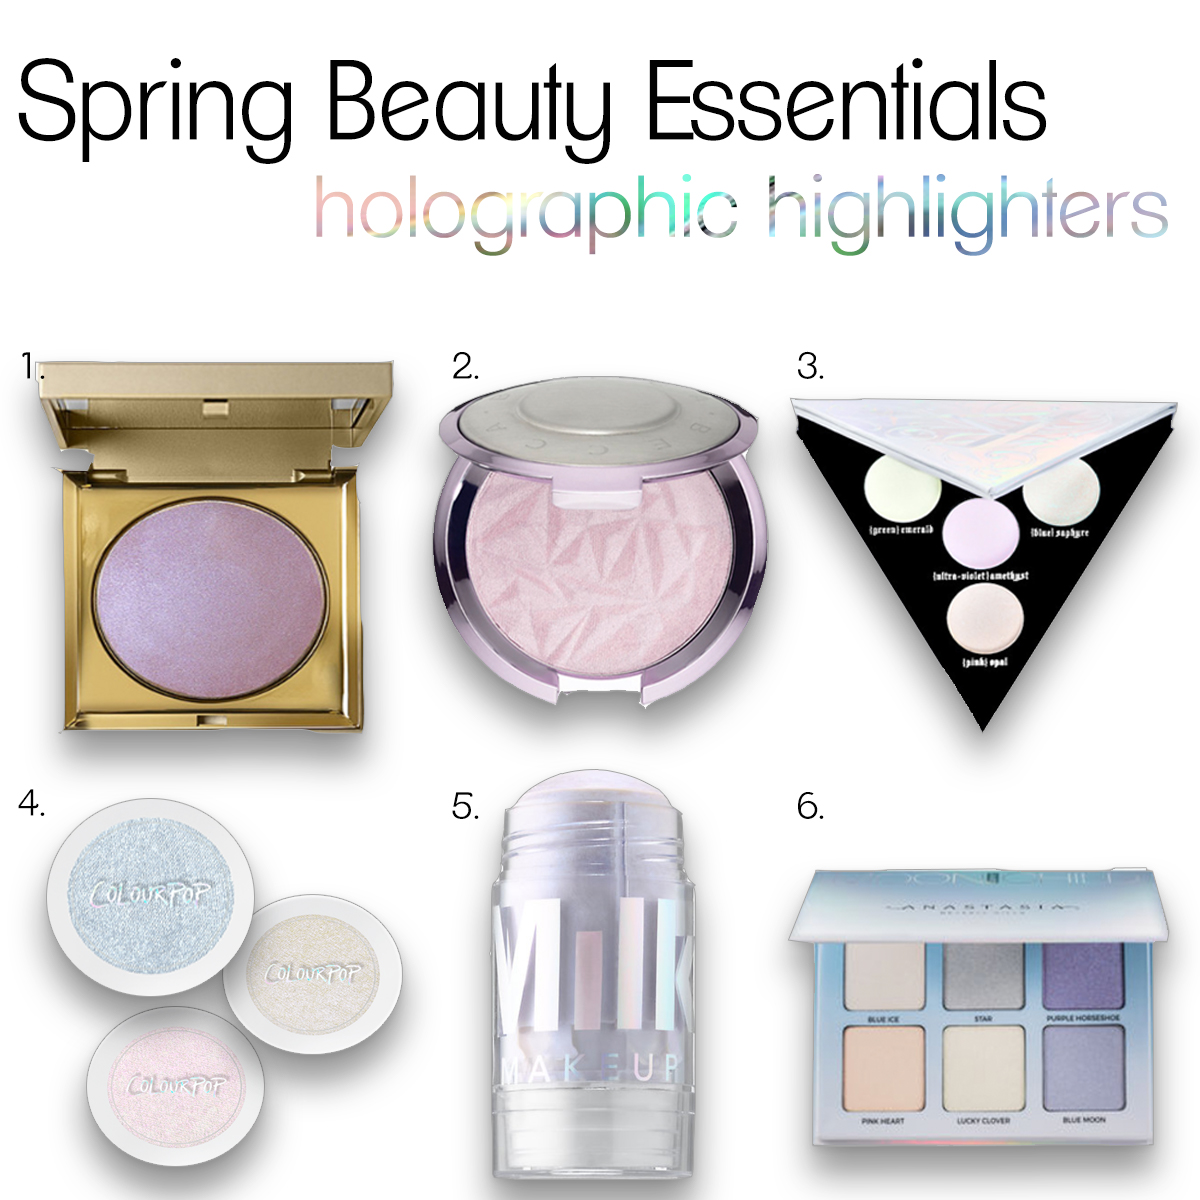 Holographic Highlighters